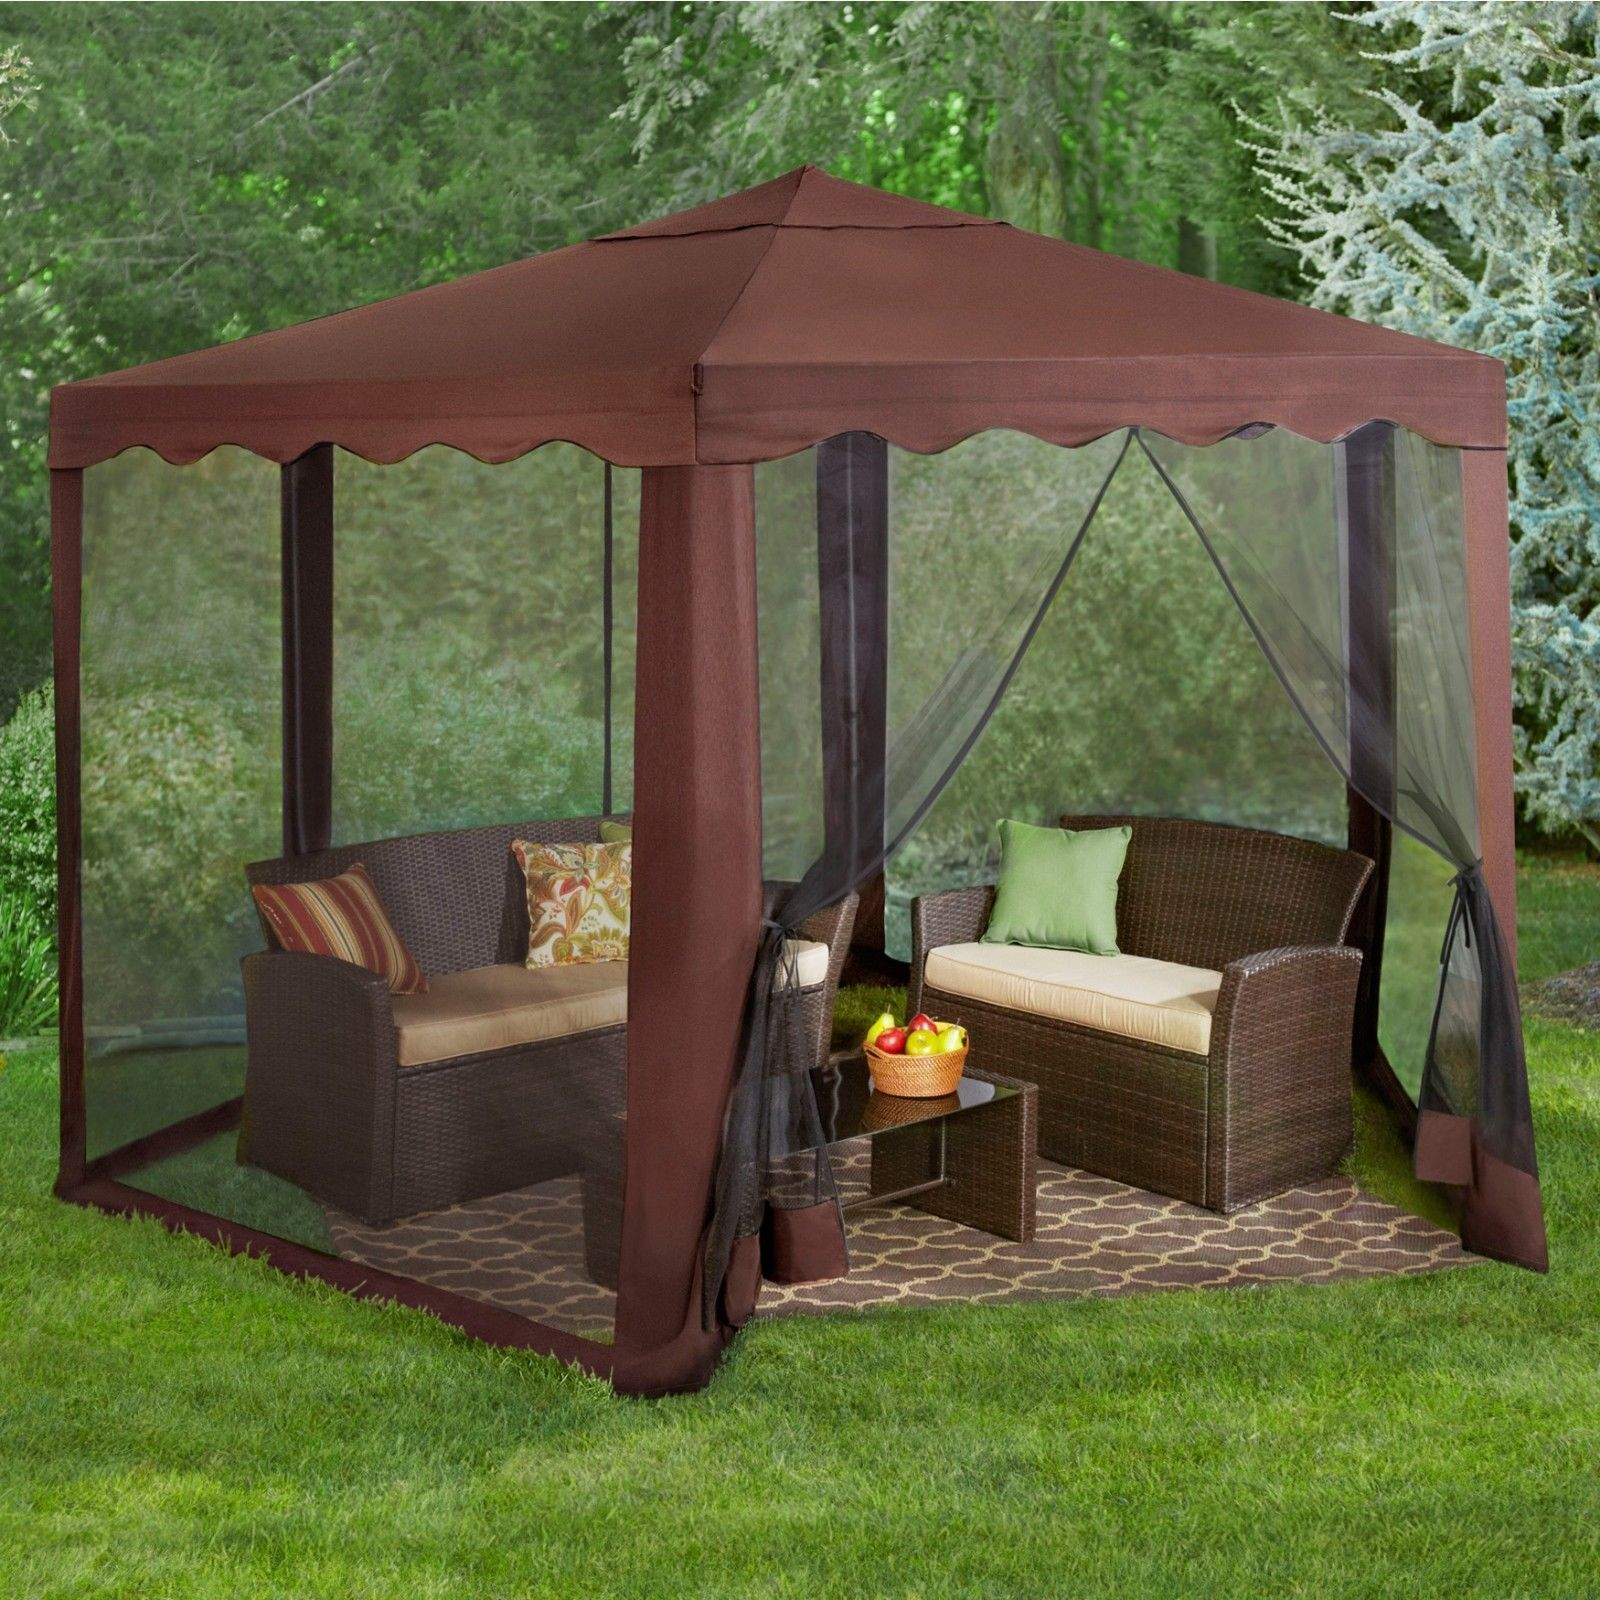 13'w Waterproof Hexagon Screened Steel Framed Gazebo Tent. Commercial Grade Pvc Patio Furniture. Patio Furniture Sets With Swivel Chairs. Outdoor Patio Sets. Small Tropical Patio Ideas. Small Backyard Ideas Before After. Restaurant Patio Furniture Ottawa. Clearance Patio Furniture At Sears. Brick Paver Patio Layout